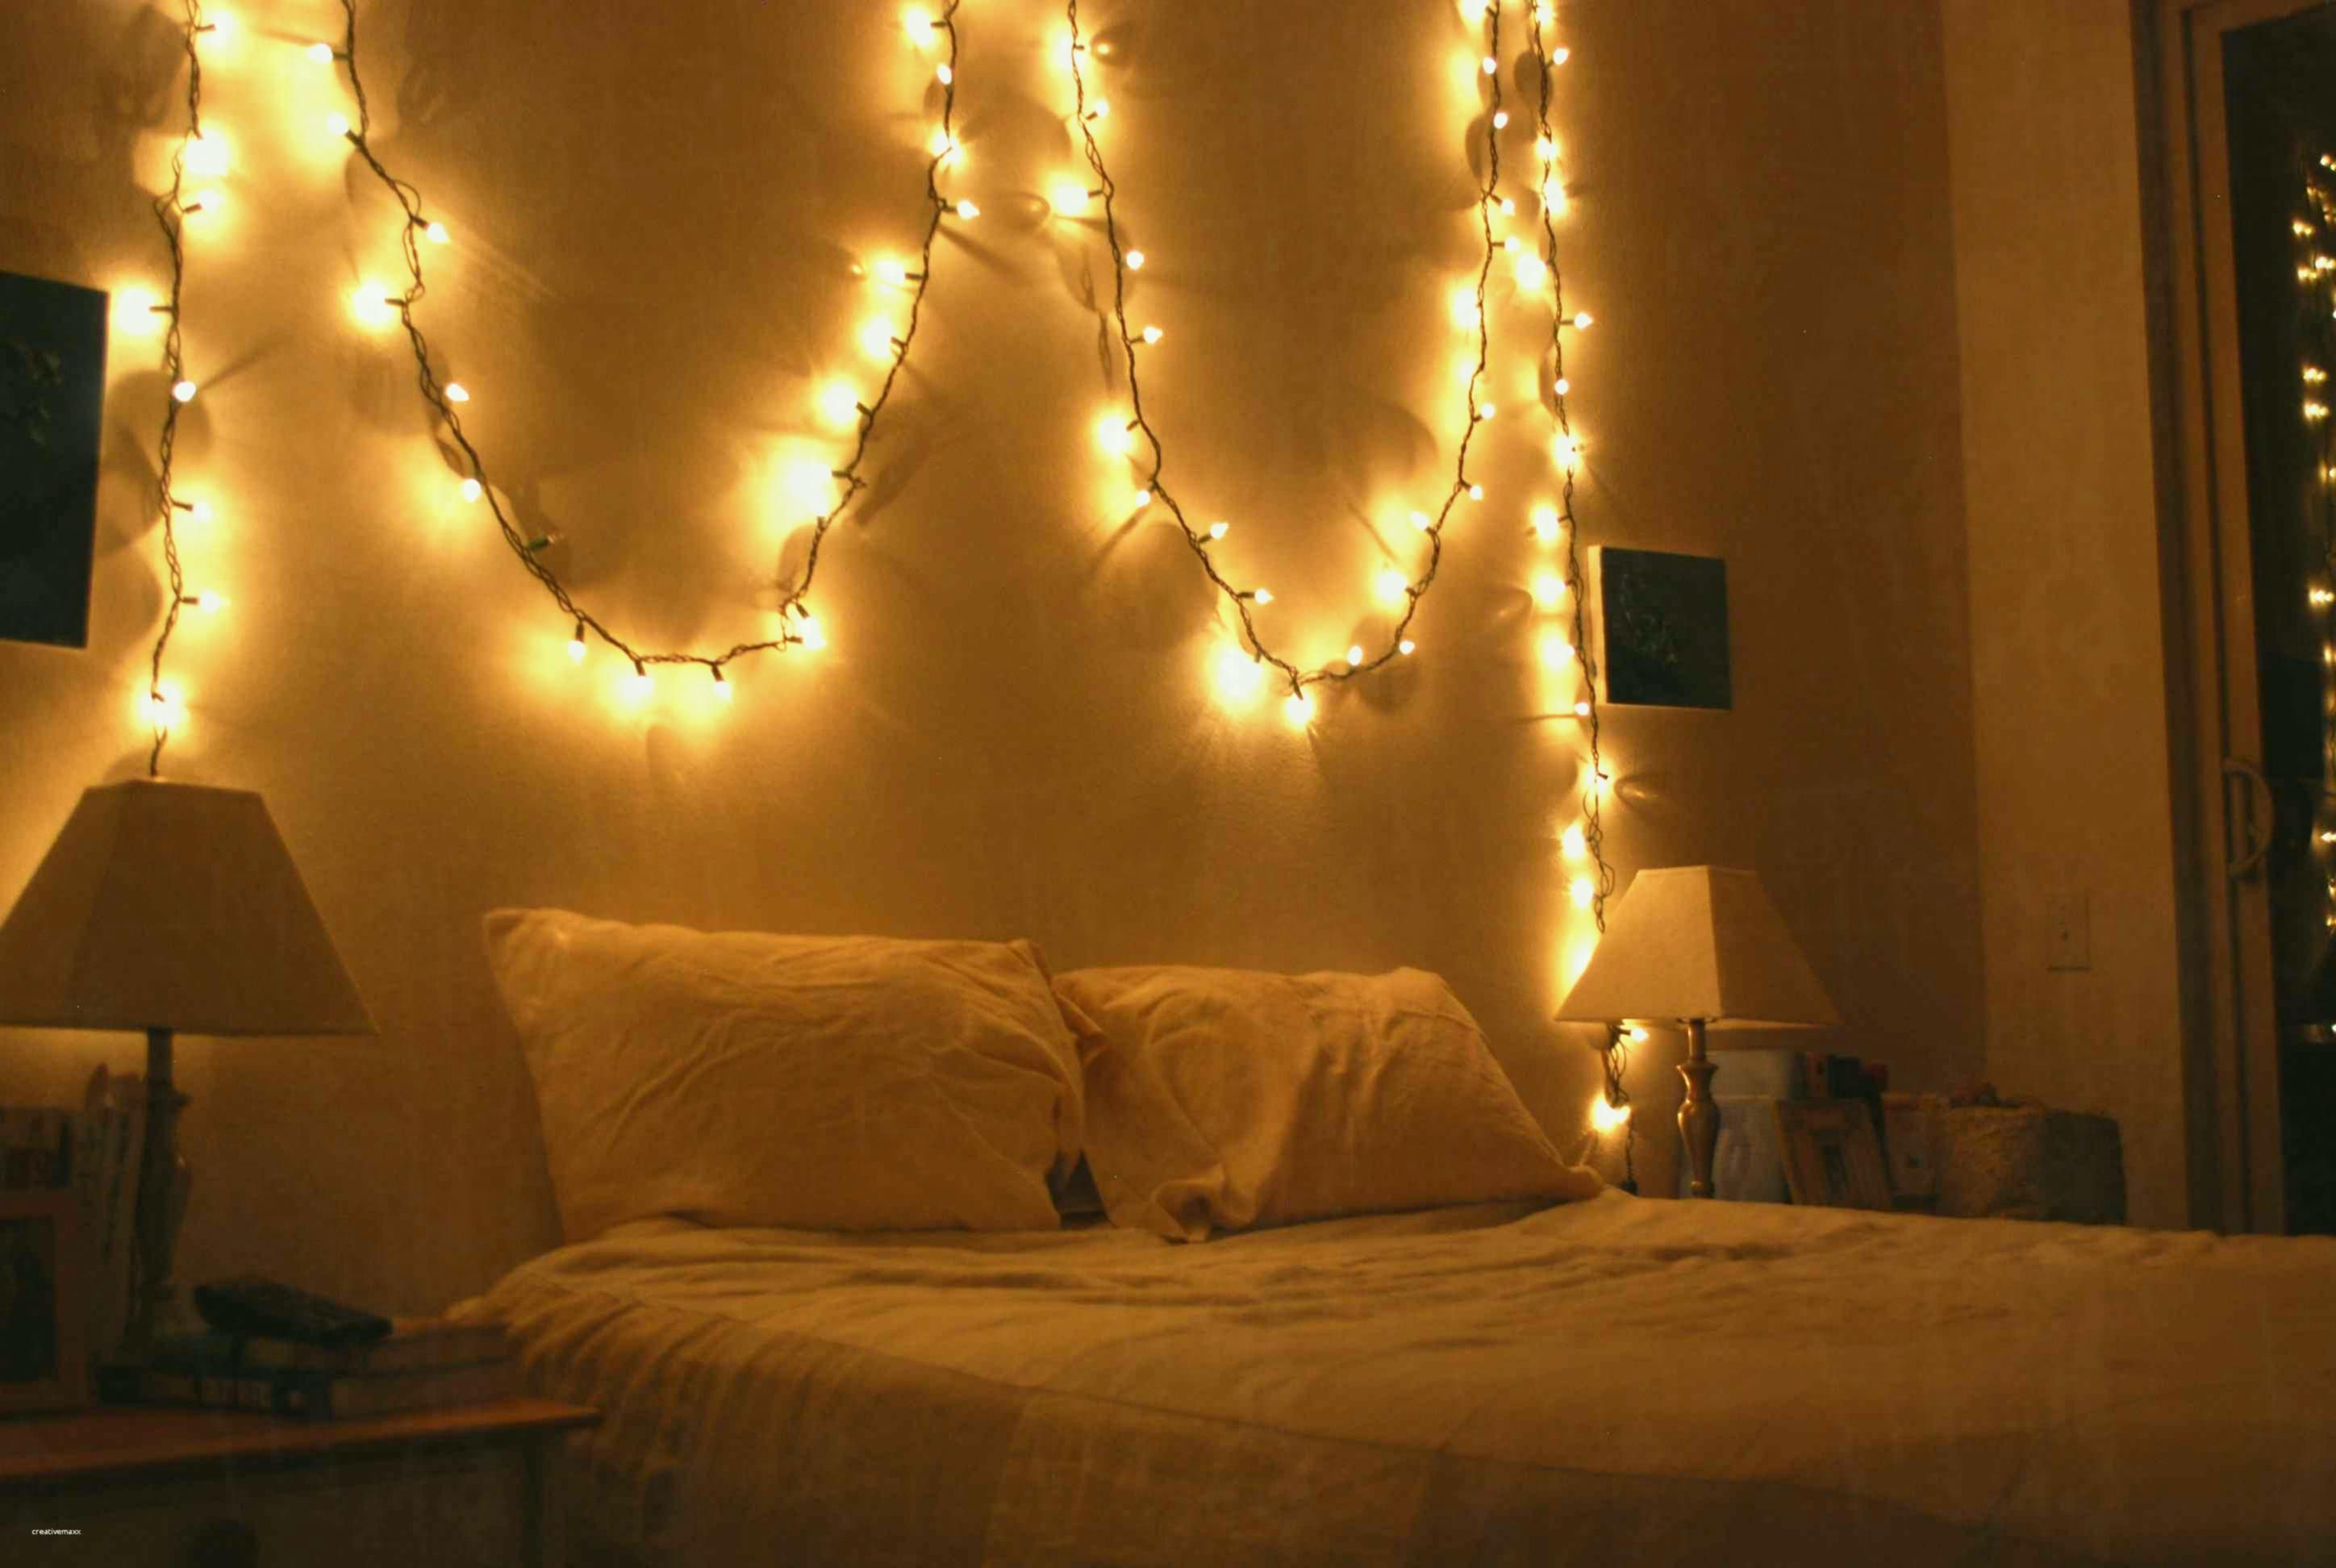 Backgrounds Fairy Lights For Bedroom Next Iphone Hd Pics Ceiling In Ideas Webbkyrkan Christmas Lights In Bedroom Bedroom Decor Lights Christmas Lights In Room